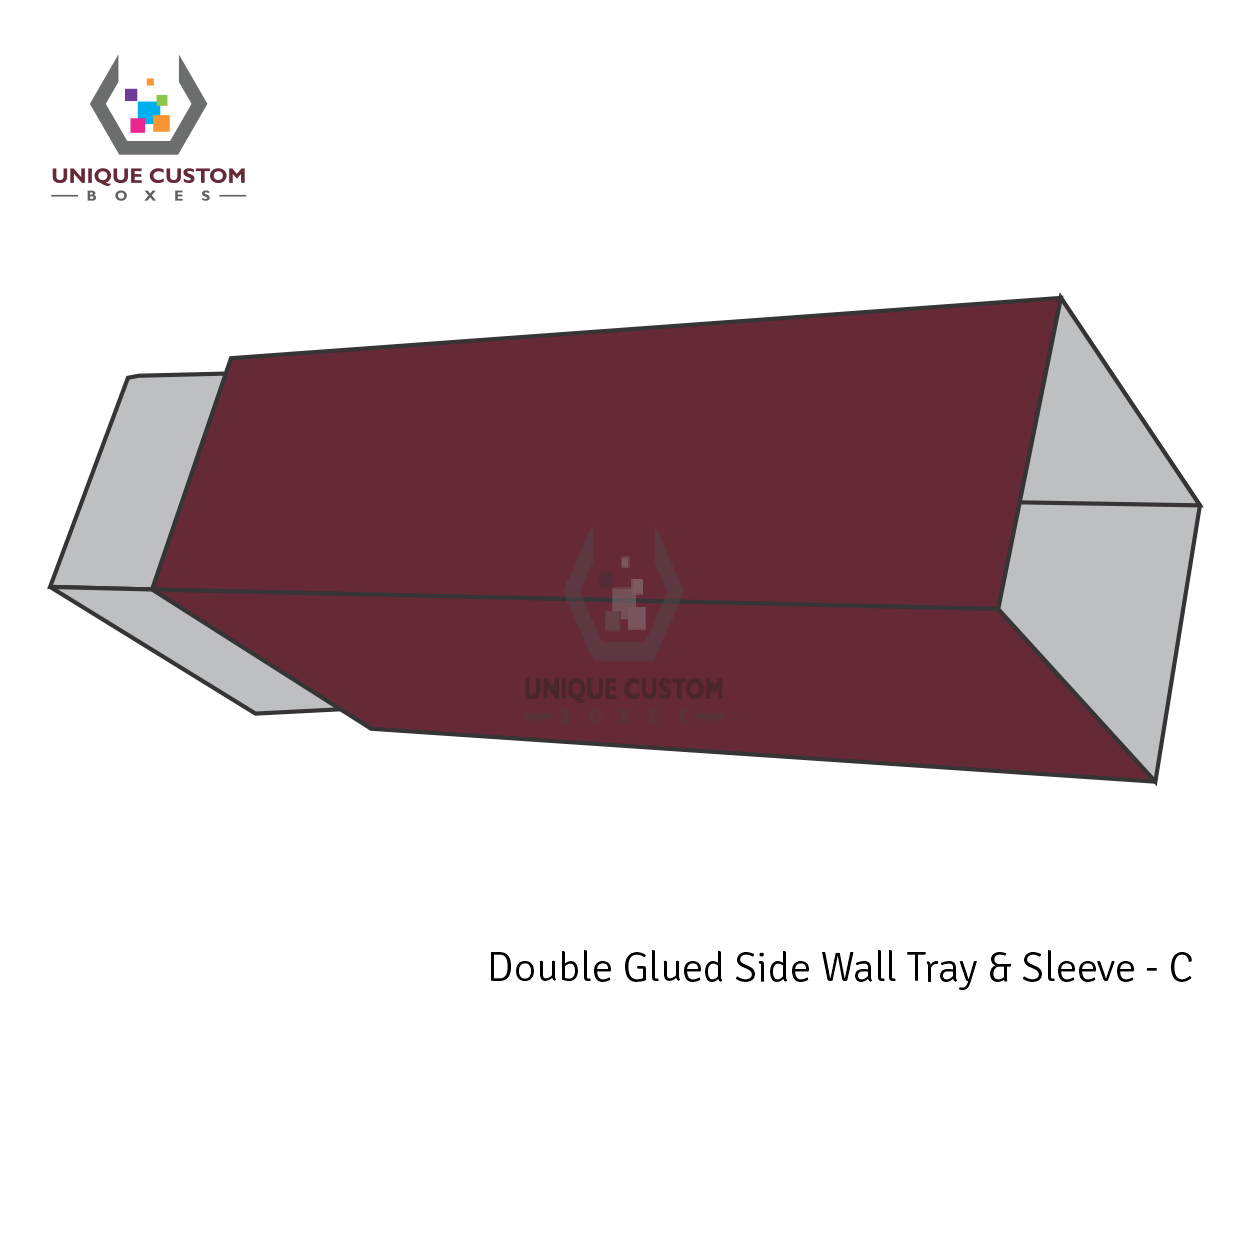 Double Glued Side Wall Tray and Sleeve-2